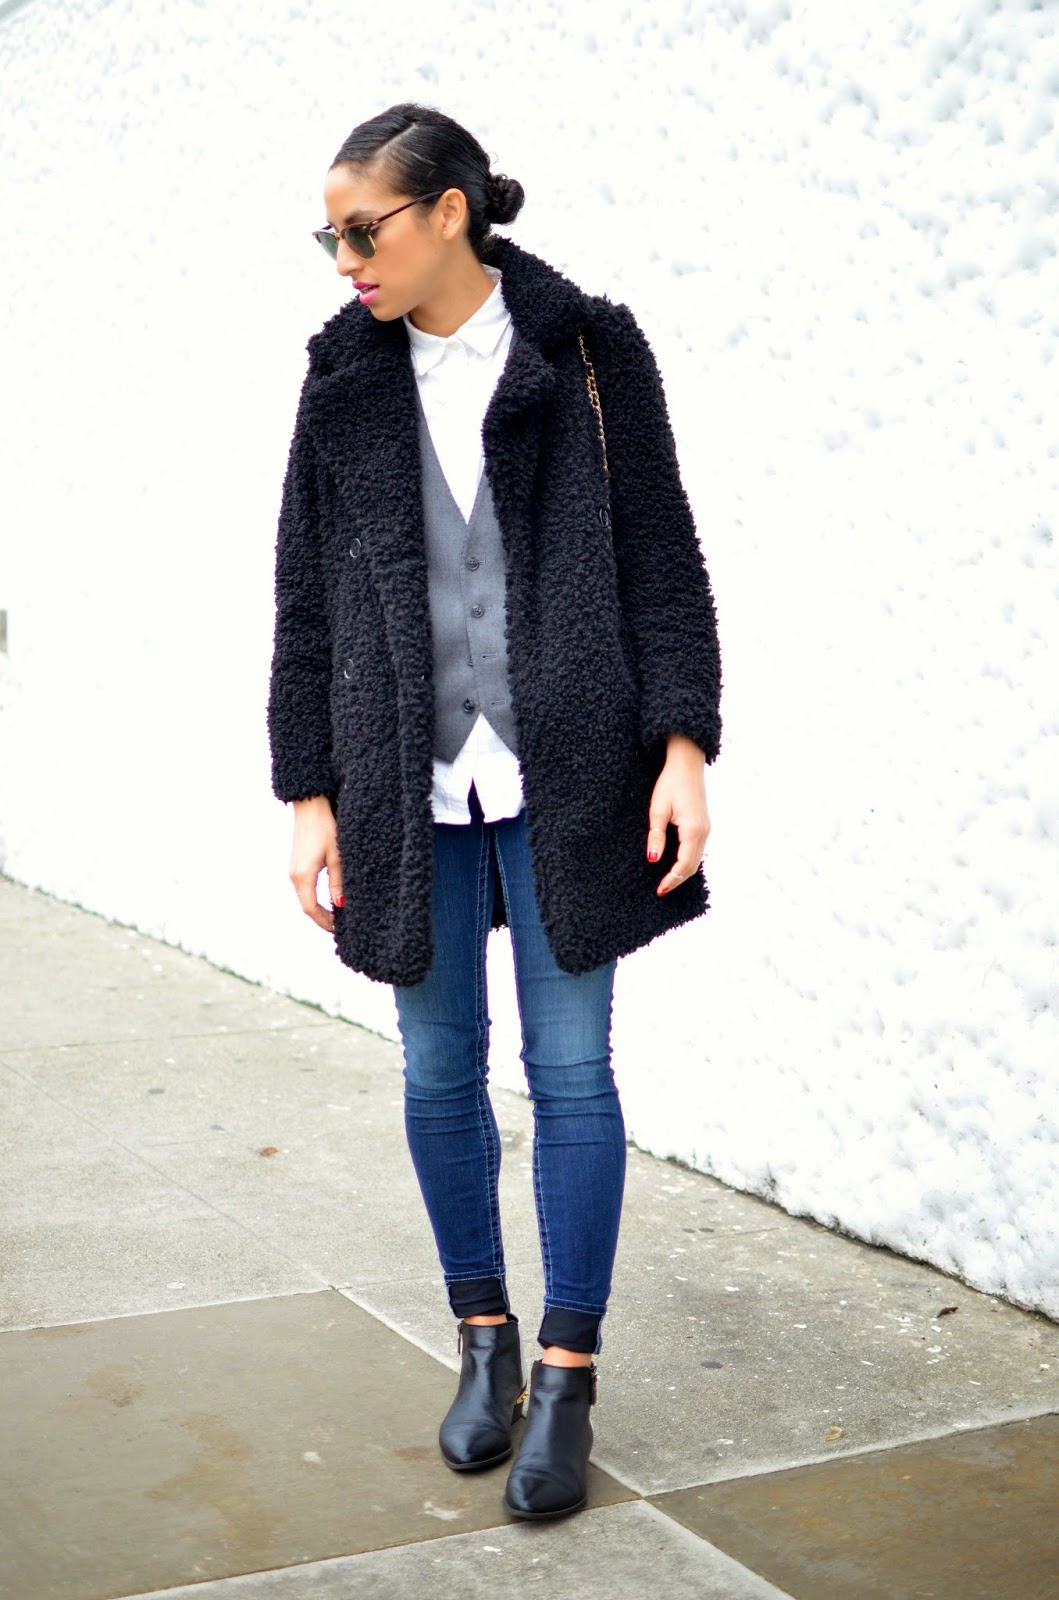 OOTD, denim, True Religion denim, Missguided, black furry coat, menswear trend, Chanel lipgloss, San Francisco style